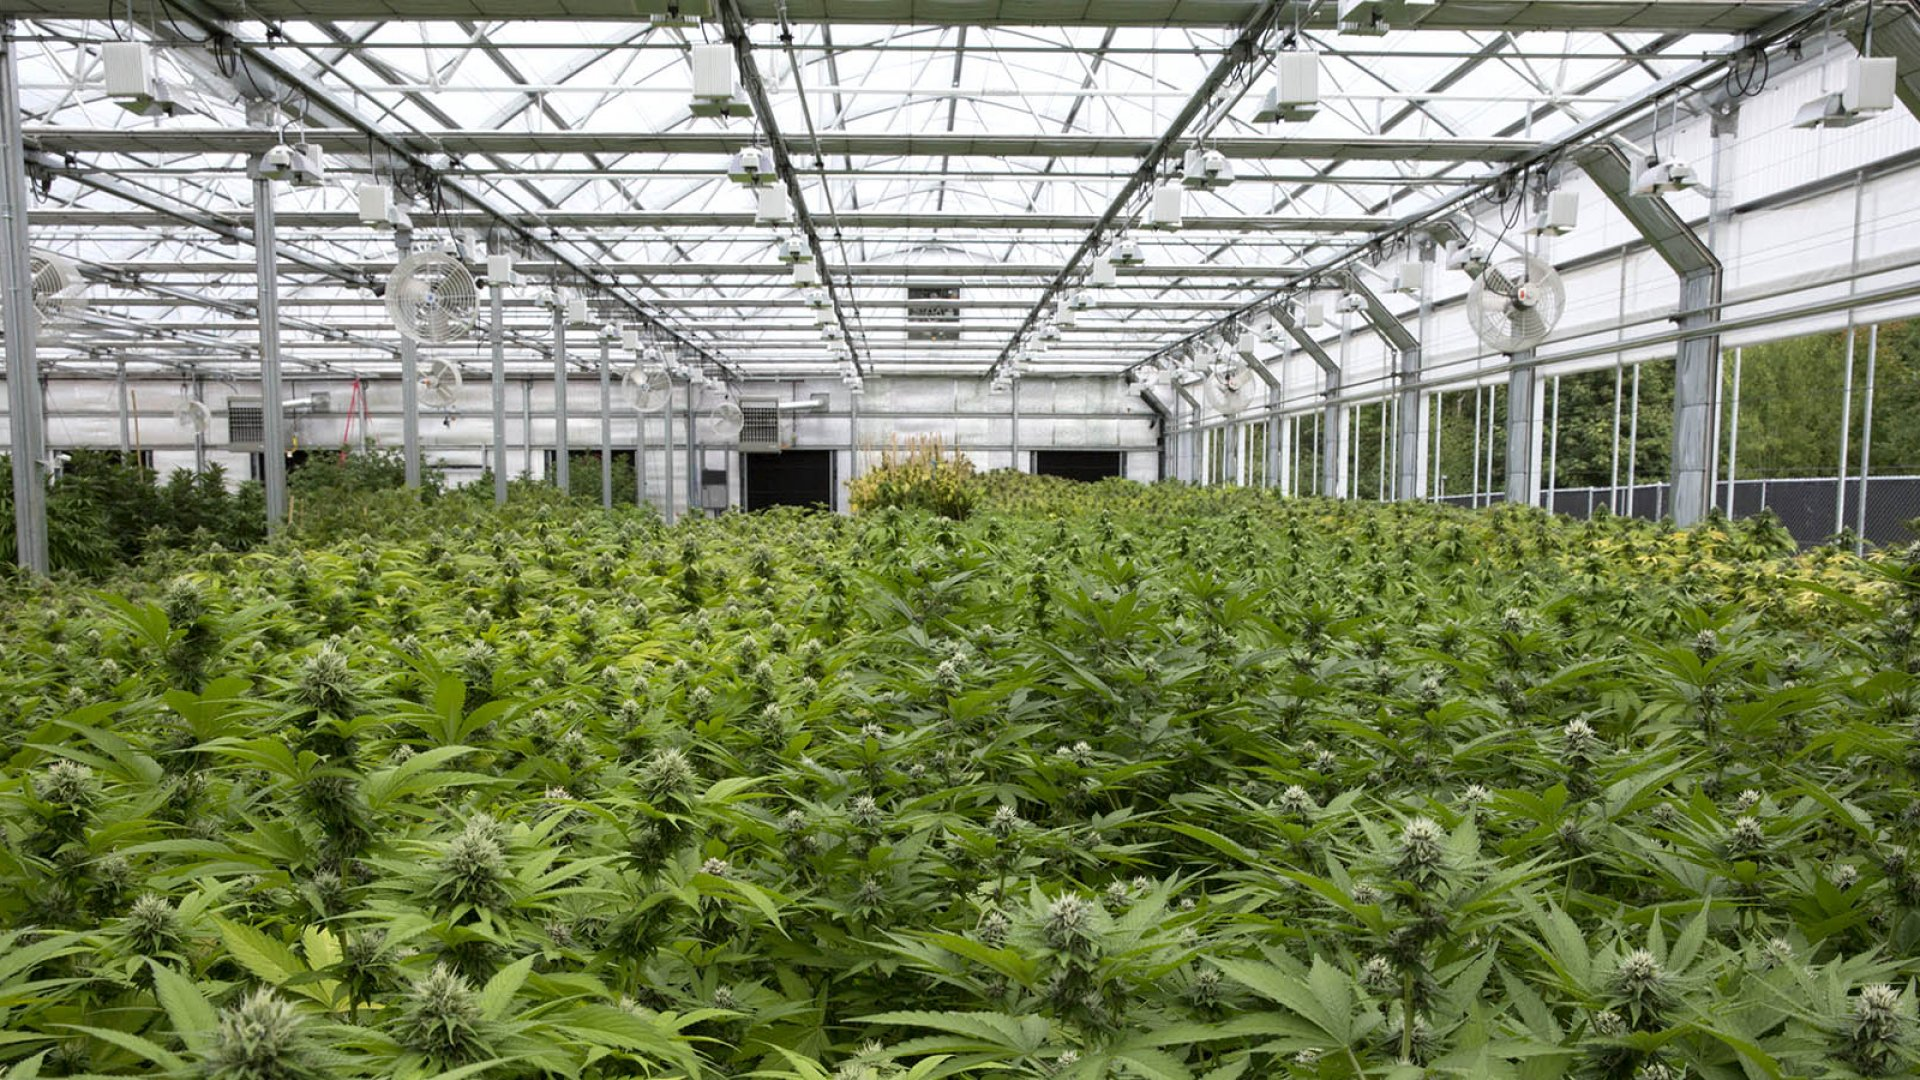 Josh Conley,  whose grandfather started one of the nation's largest greenhouse manufacturing company, launched his own greenhouse company that caters exclusively to cannabis clients. The photo above depicts a greenhouse he built in Washington state.